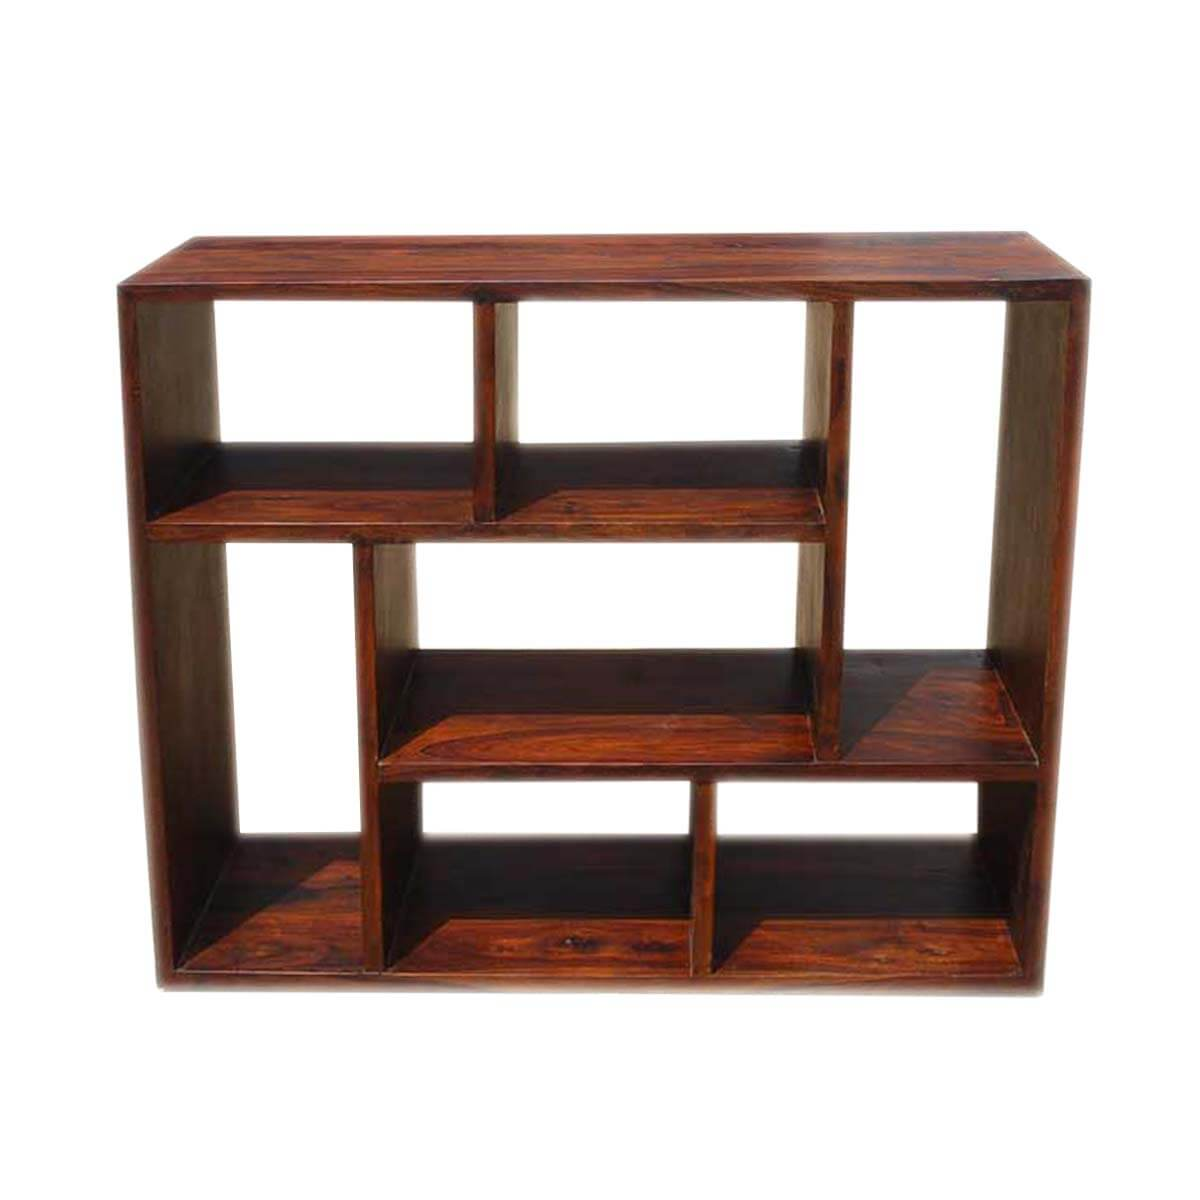 Cube Bookshelf Asymmetrical Cube Bookcase Contemporary Wooden Display